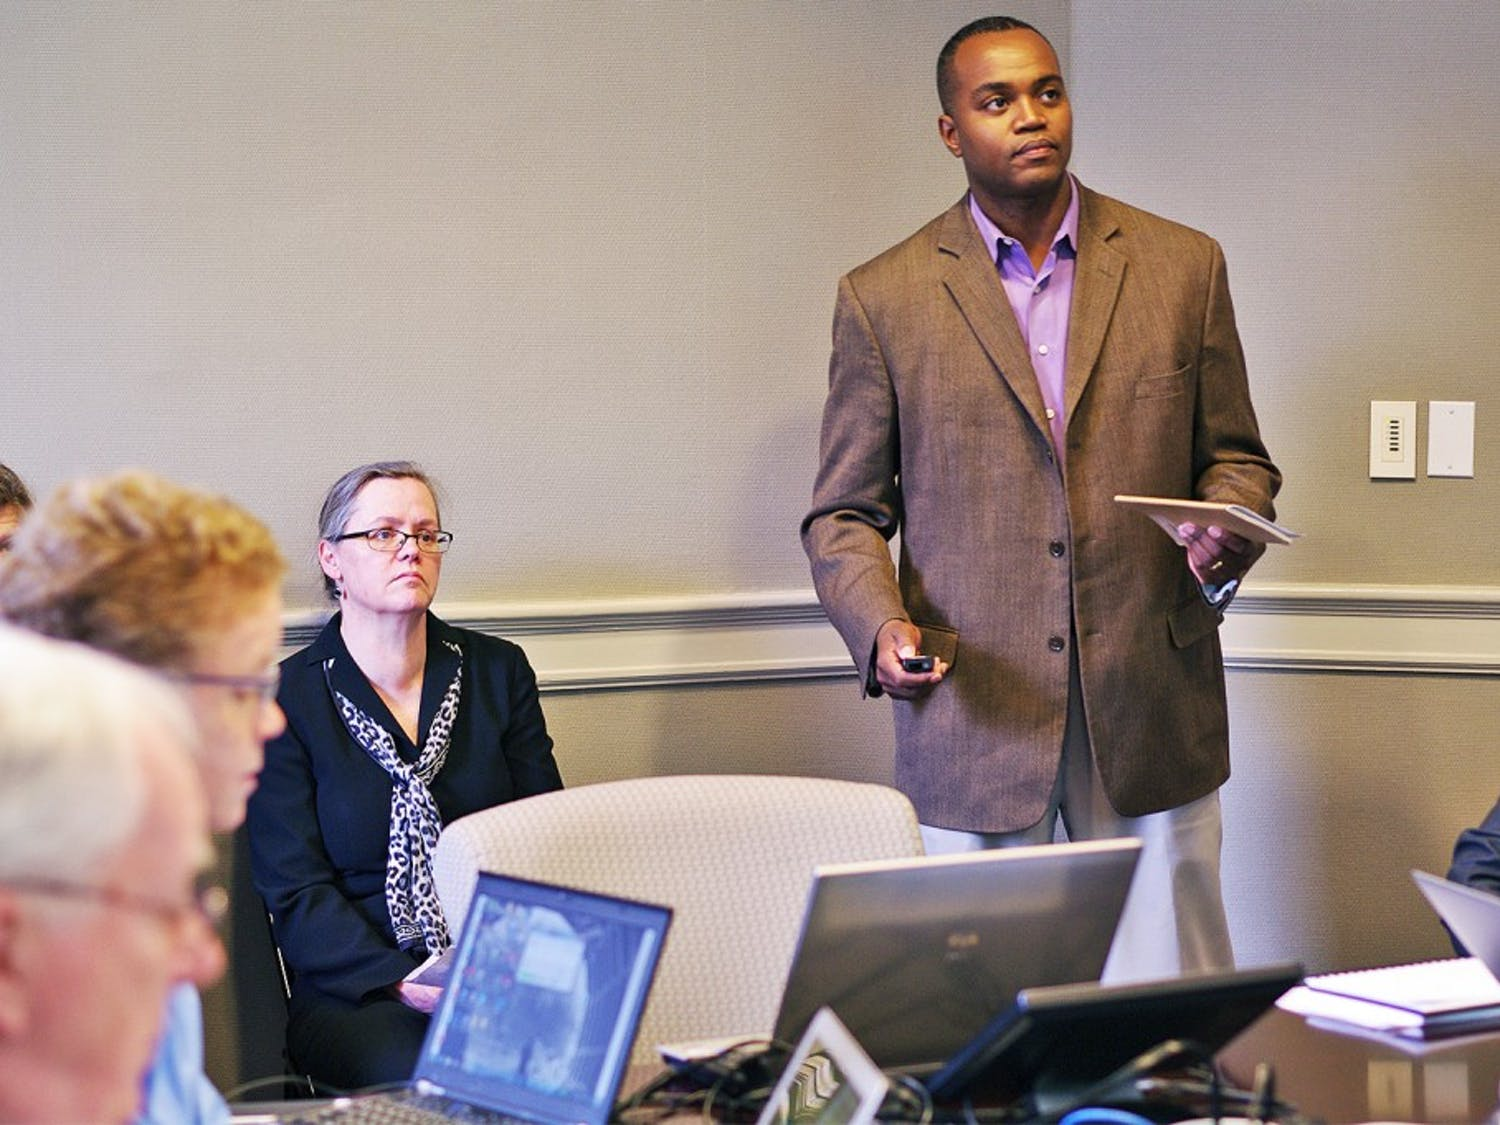 Associate Professor at North Carolina Central University Antonio Baines (right), speaks at the Faculty Executive meeting on Monday.